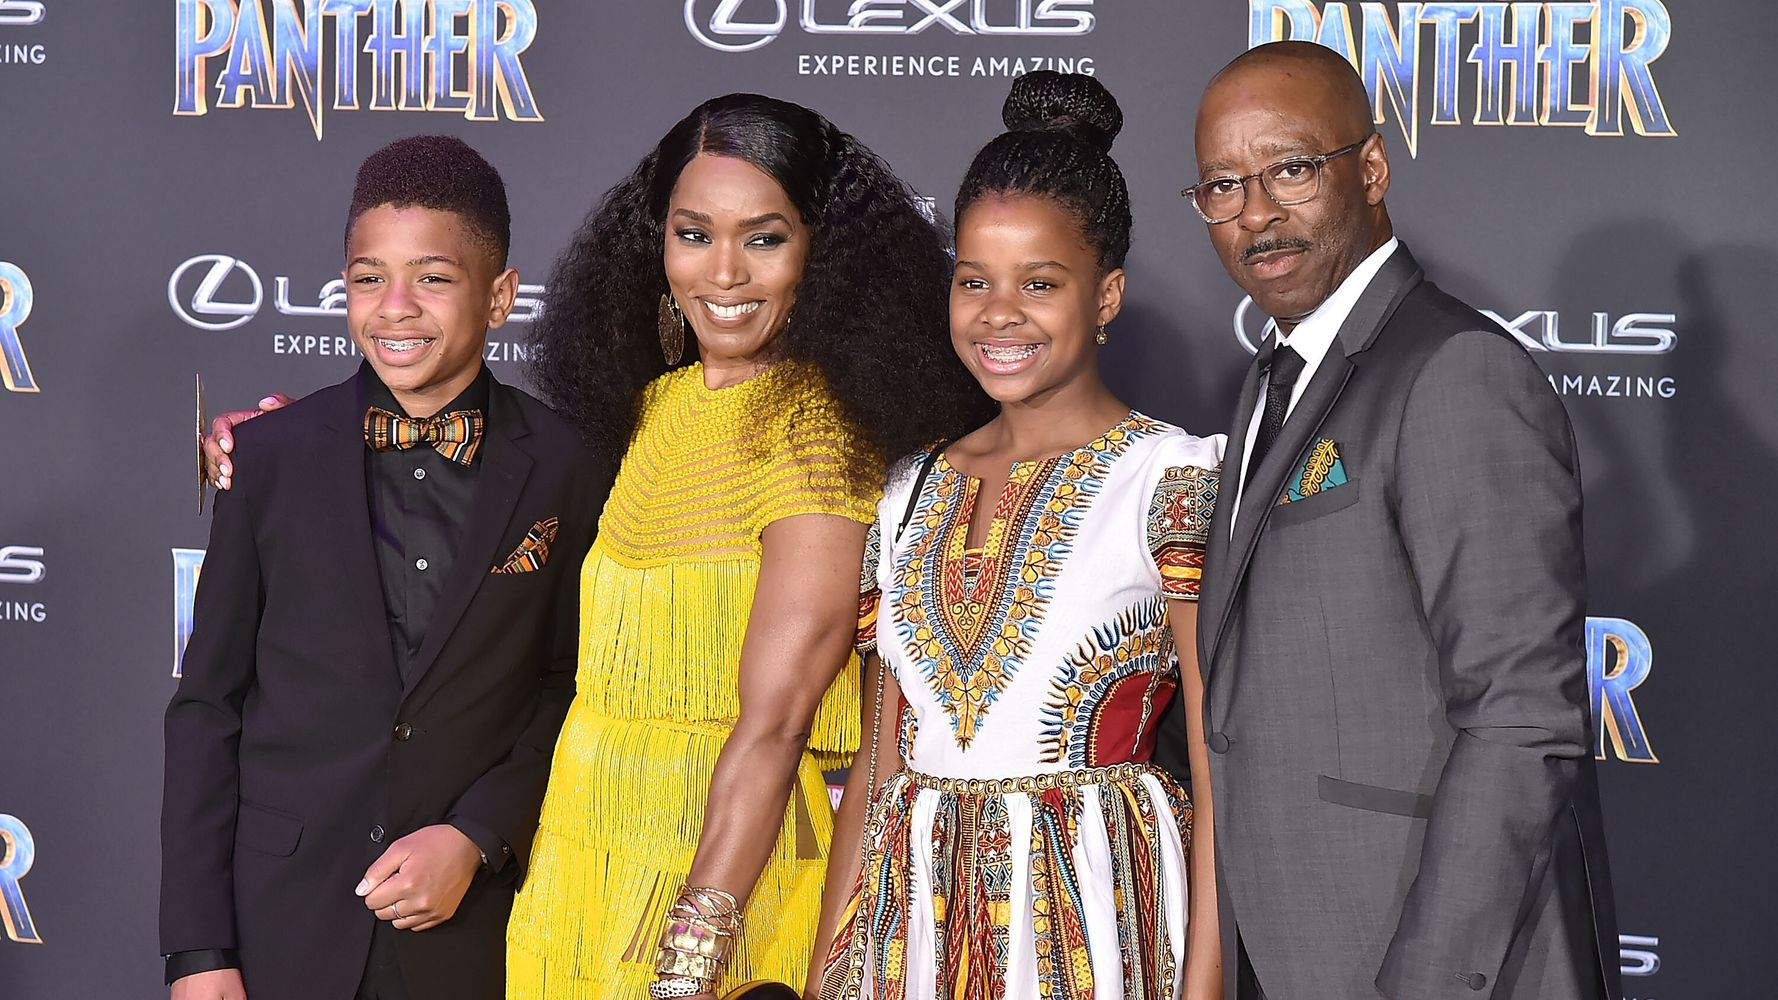 Thoughtful Parenting Quotes From Angela Bassett | HuffPost Life